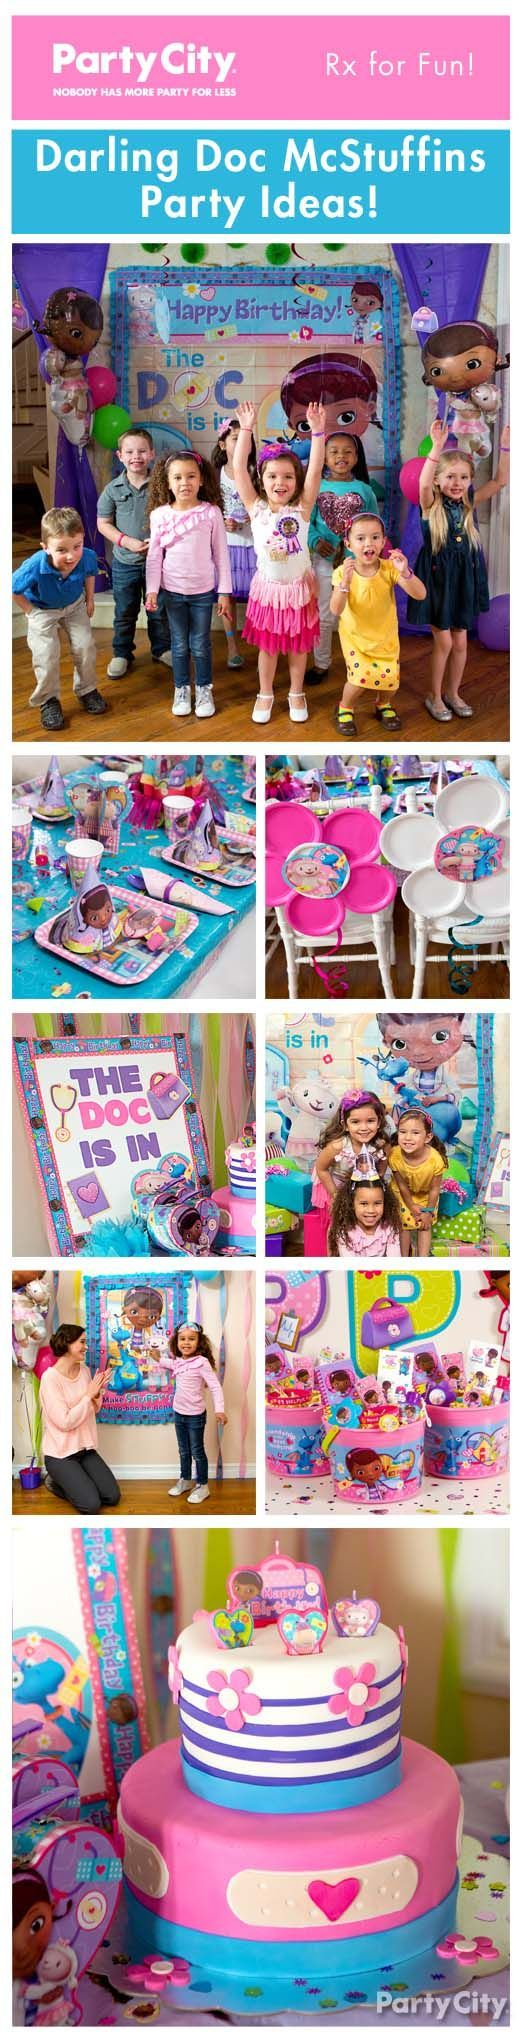 Give your party a healthy dosage of Doc McStuffins! Our too-cute party ideas featuring Dottie & friends are the perfect way to celebrate your daughter's birthday!: